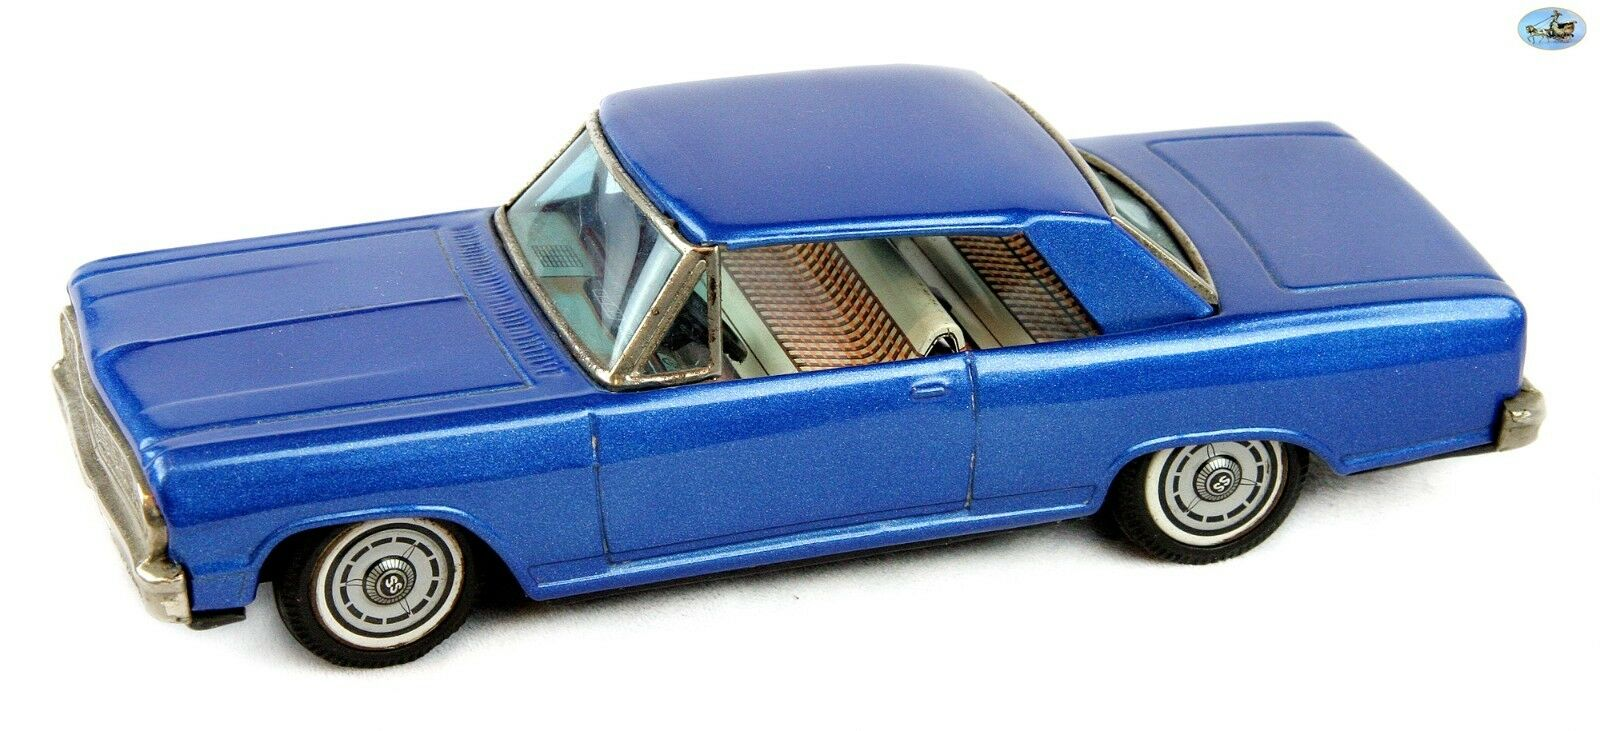 Awesome 1965 Sällsynt årgång Bandai japan blå Chevrolet Impala Tin Friction bil